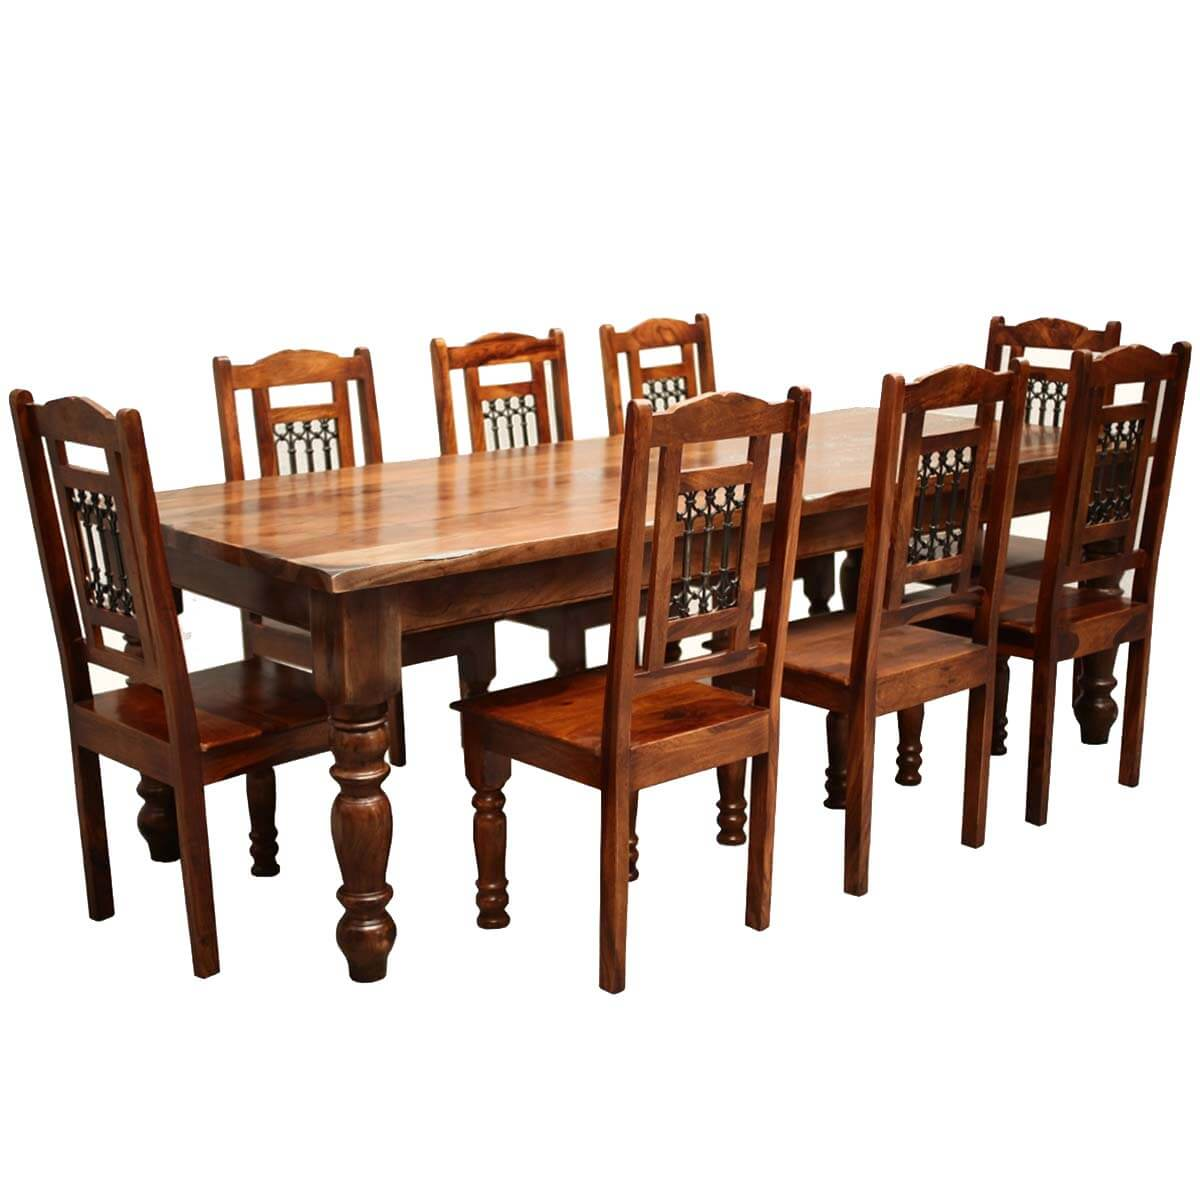 Rustic furniture solid wood large dining table 8 chair set Wooden dining table and chairs